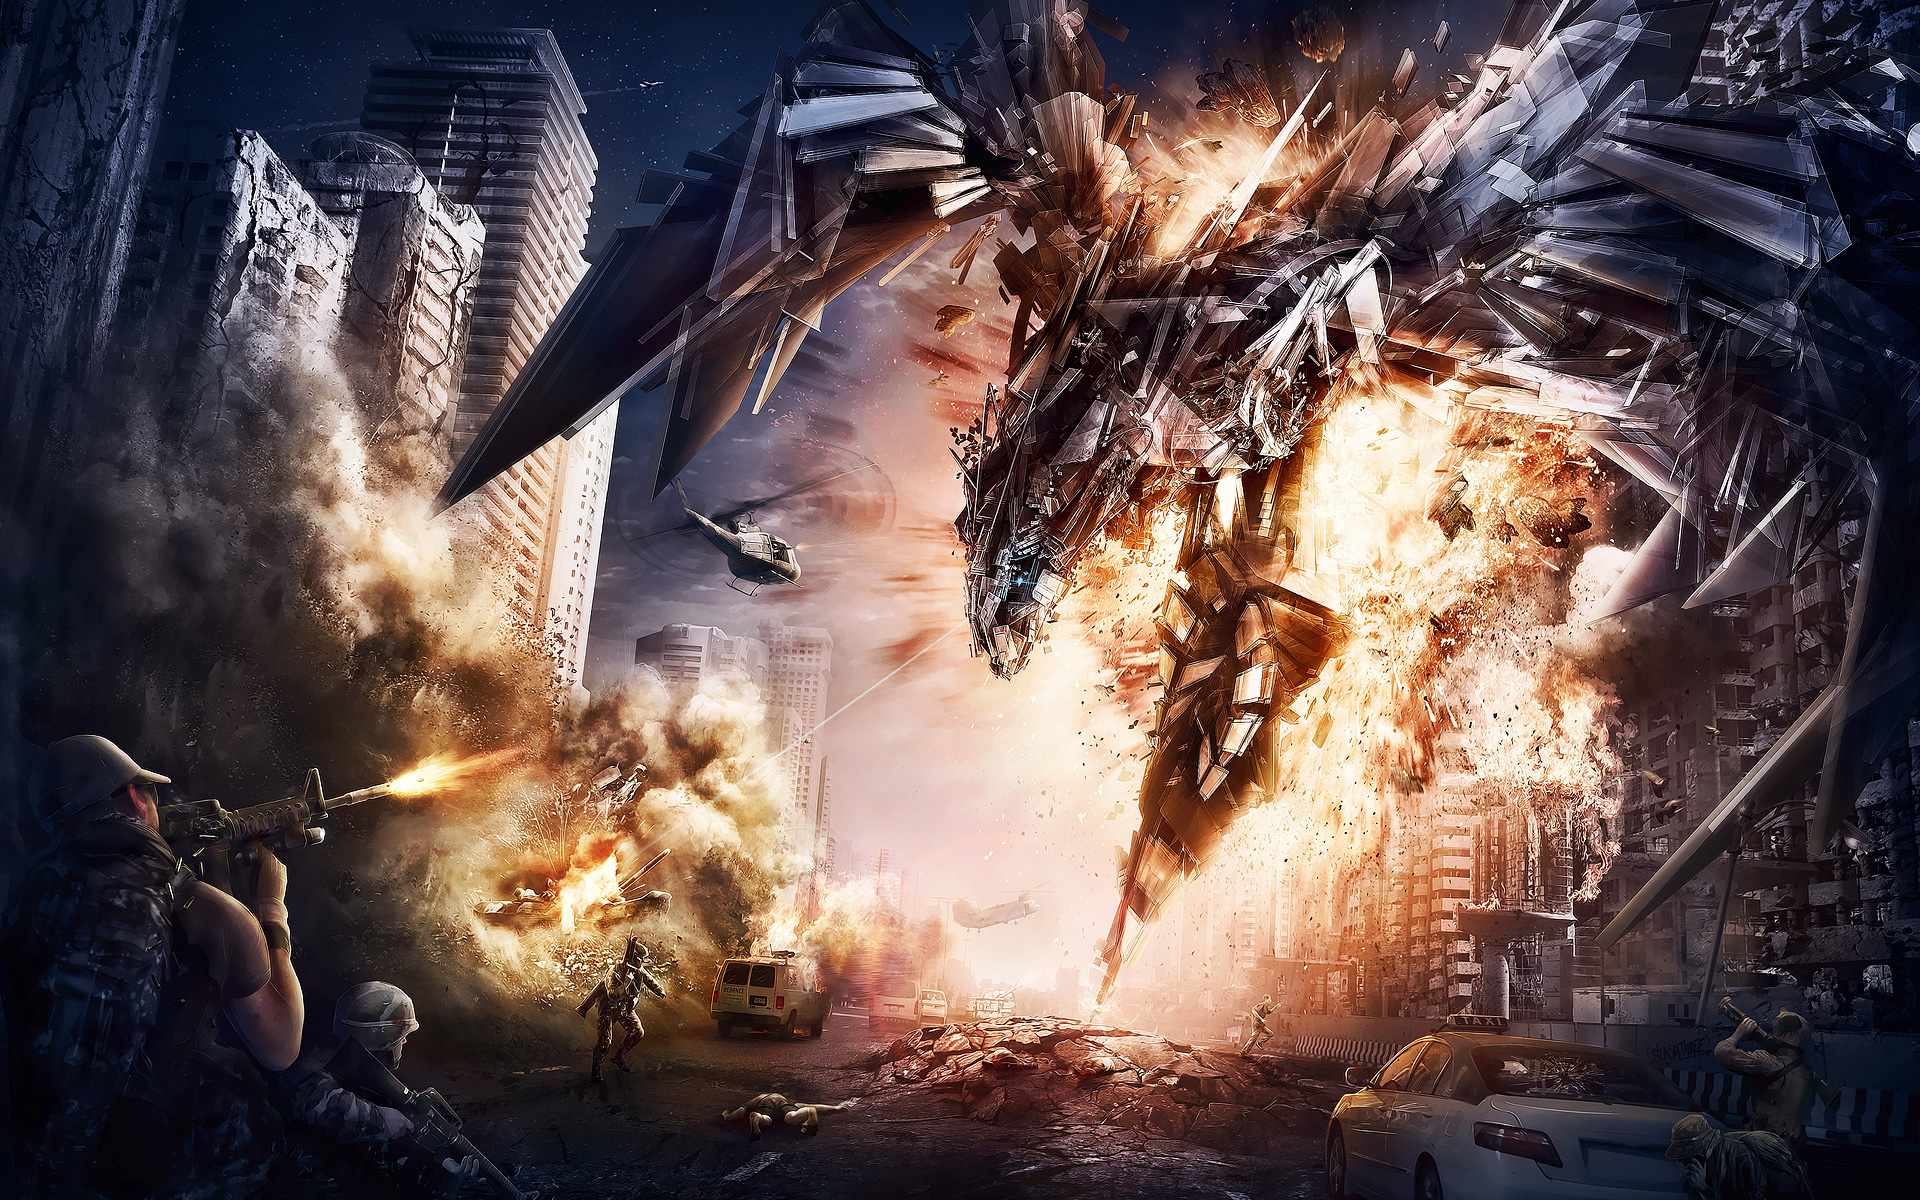 Transformers 4 Artwork 943.21 Kb